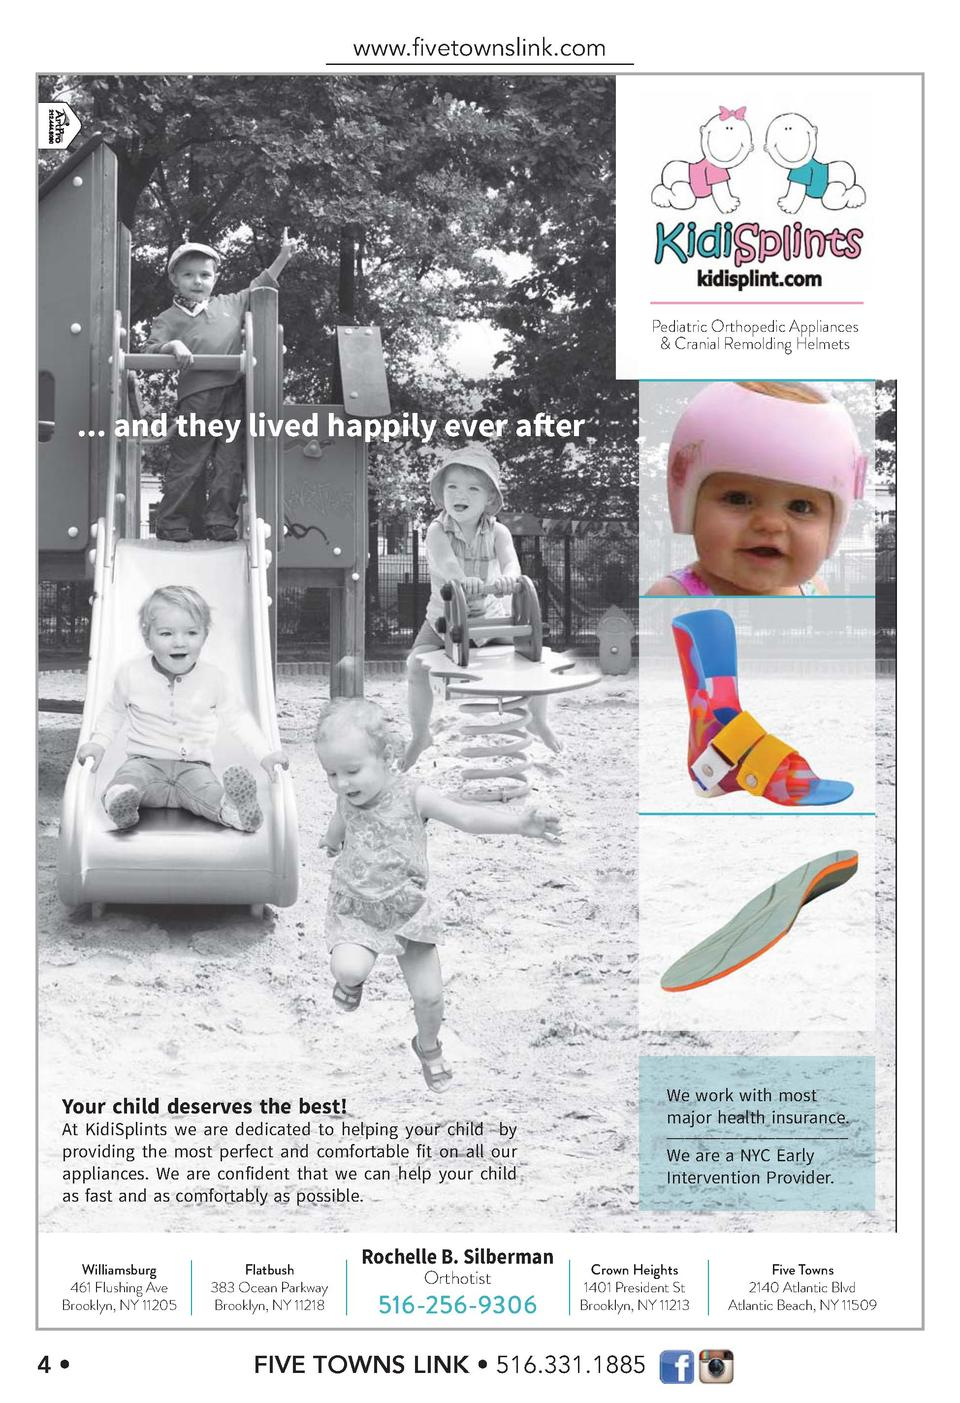 www.   vetownslink.com  Pediatric Orthopedic Appliances   Cranial Remolding Helmets  ... and they lived happily ever after...